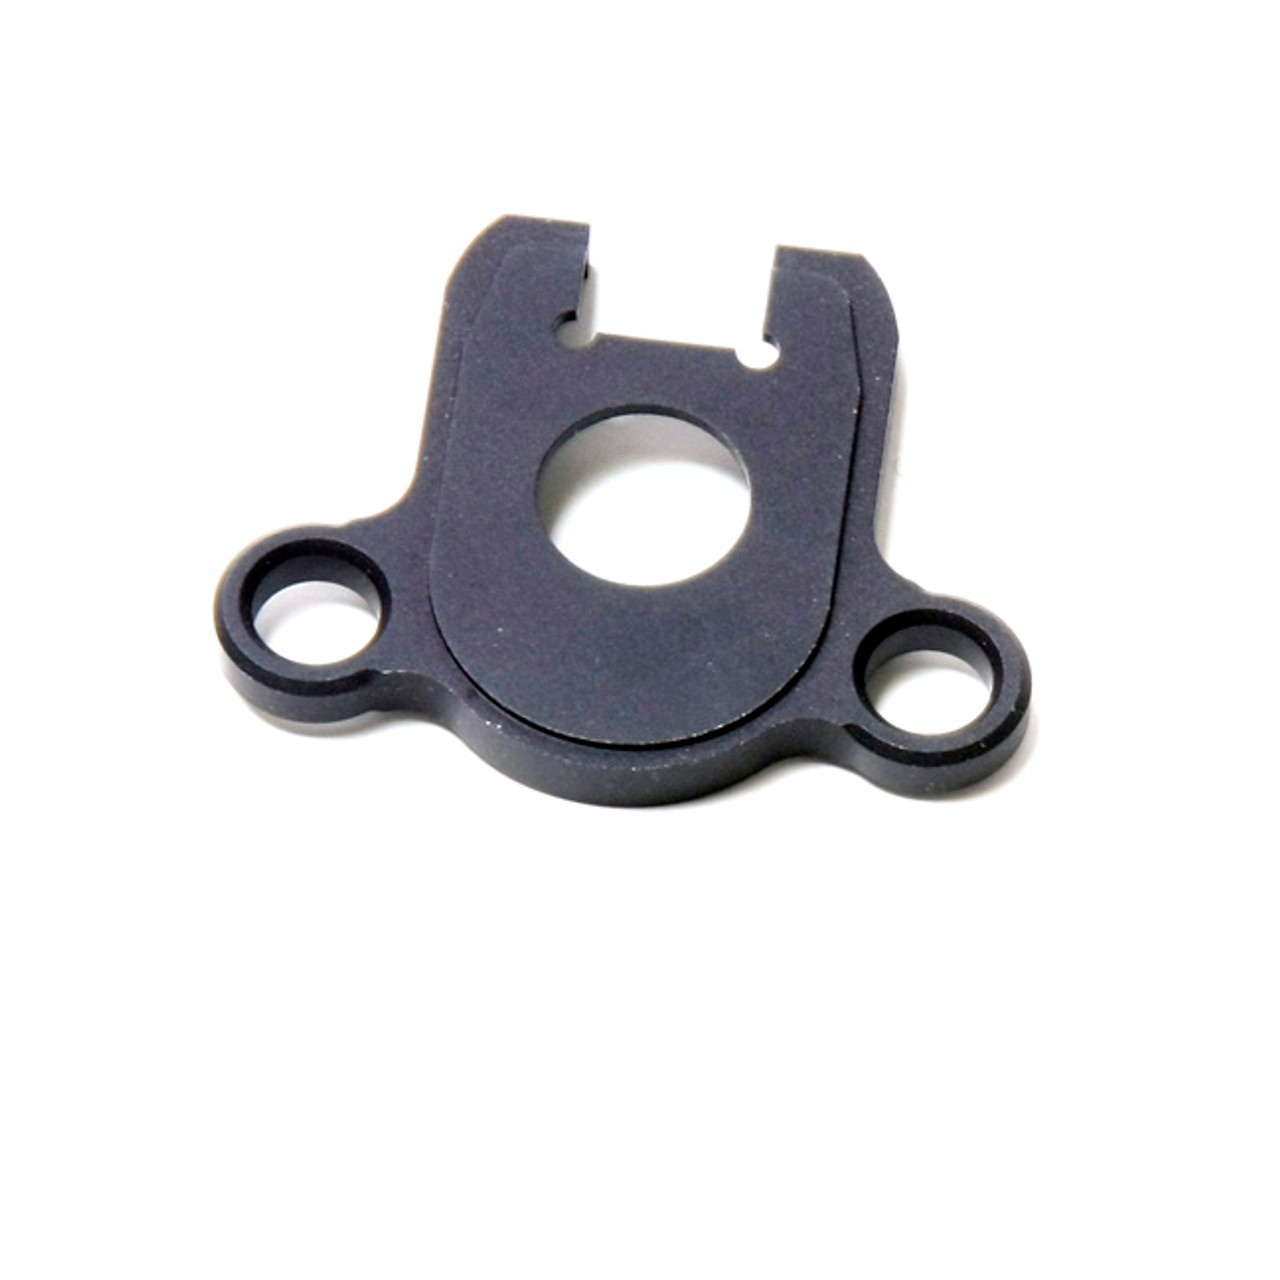 Remington® Model 870™ Ambidextrous Single Point Sling Adaptor Plate - Aluminum